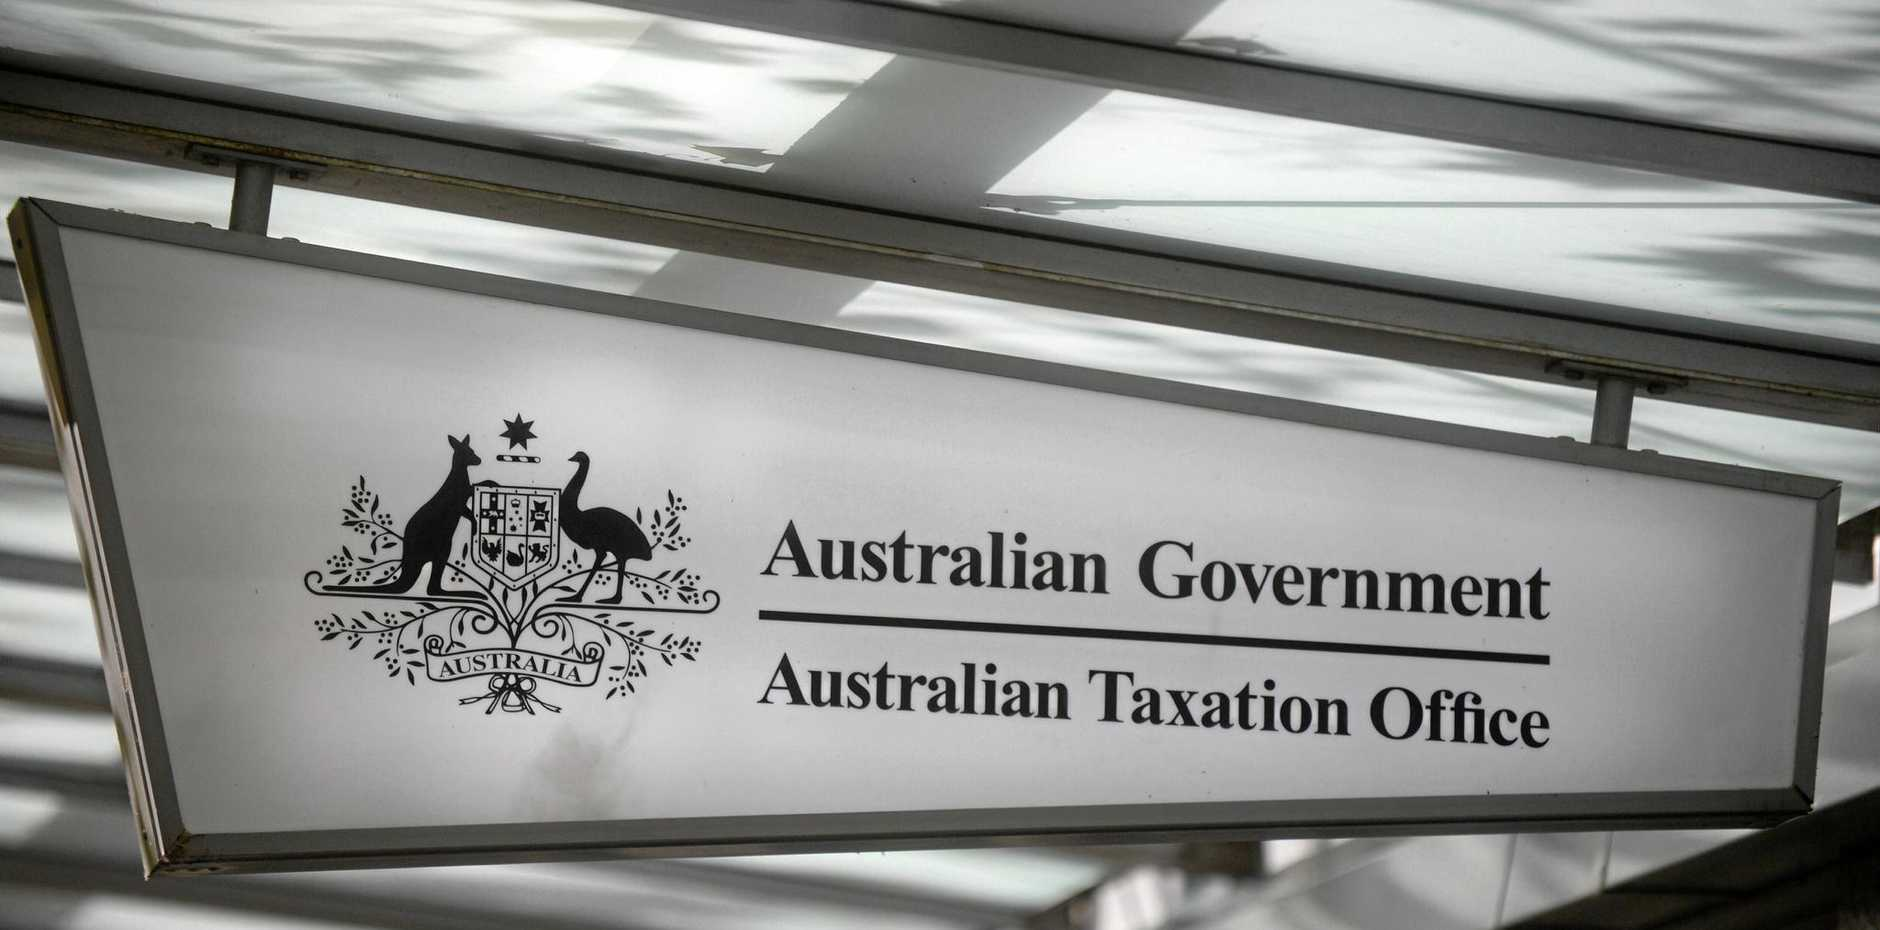 Already this year, the Australian Taxation Office has registered over 17,067 scam reports with victims collectively losing $1.5 million.